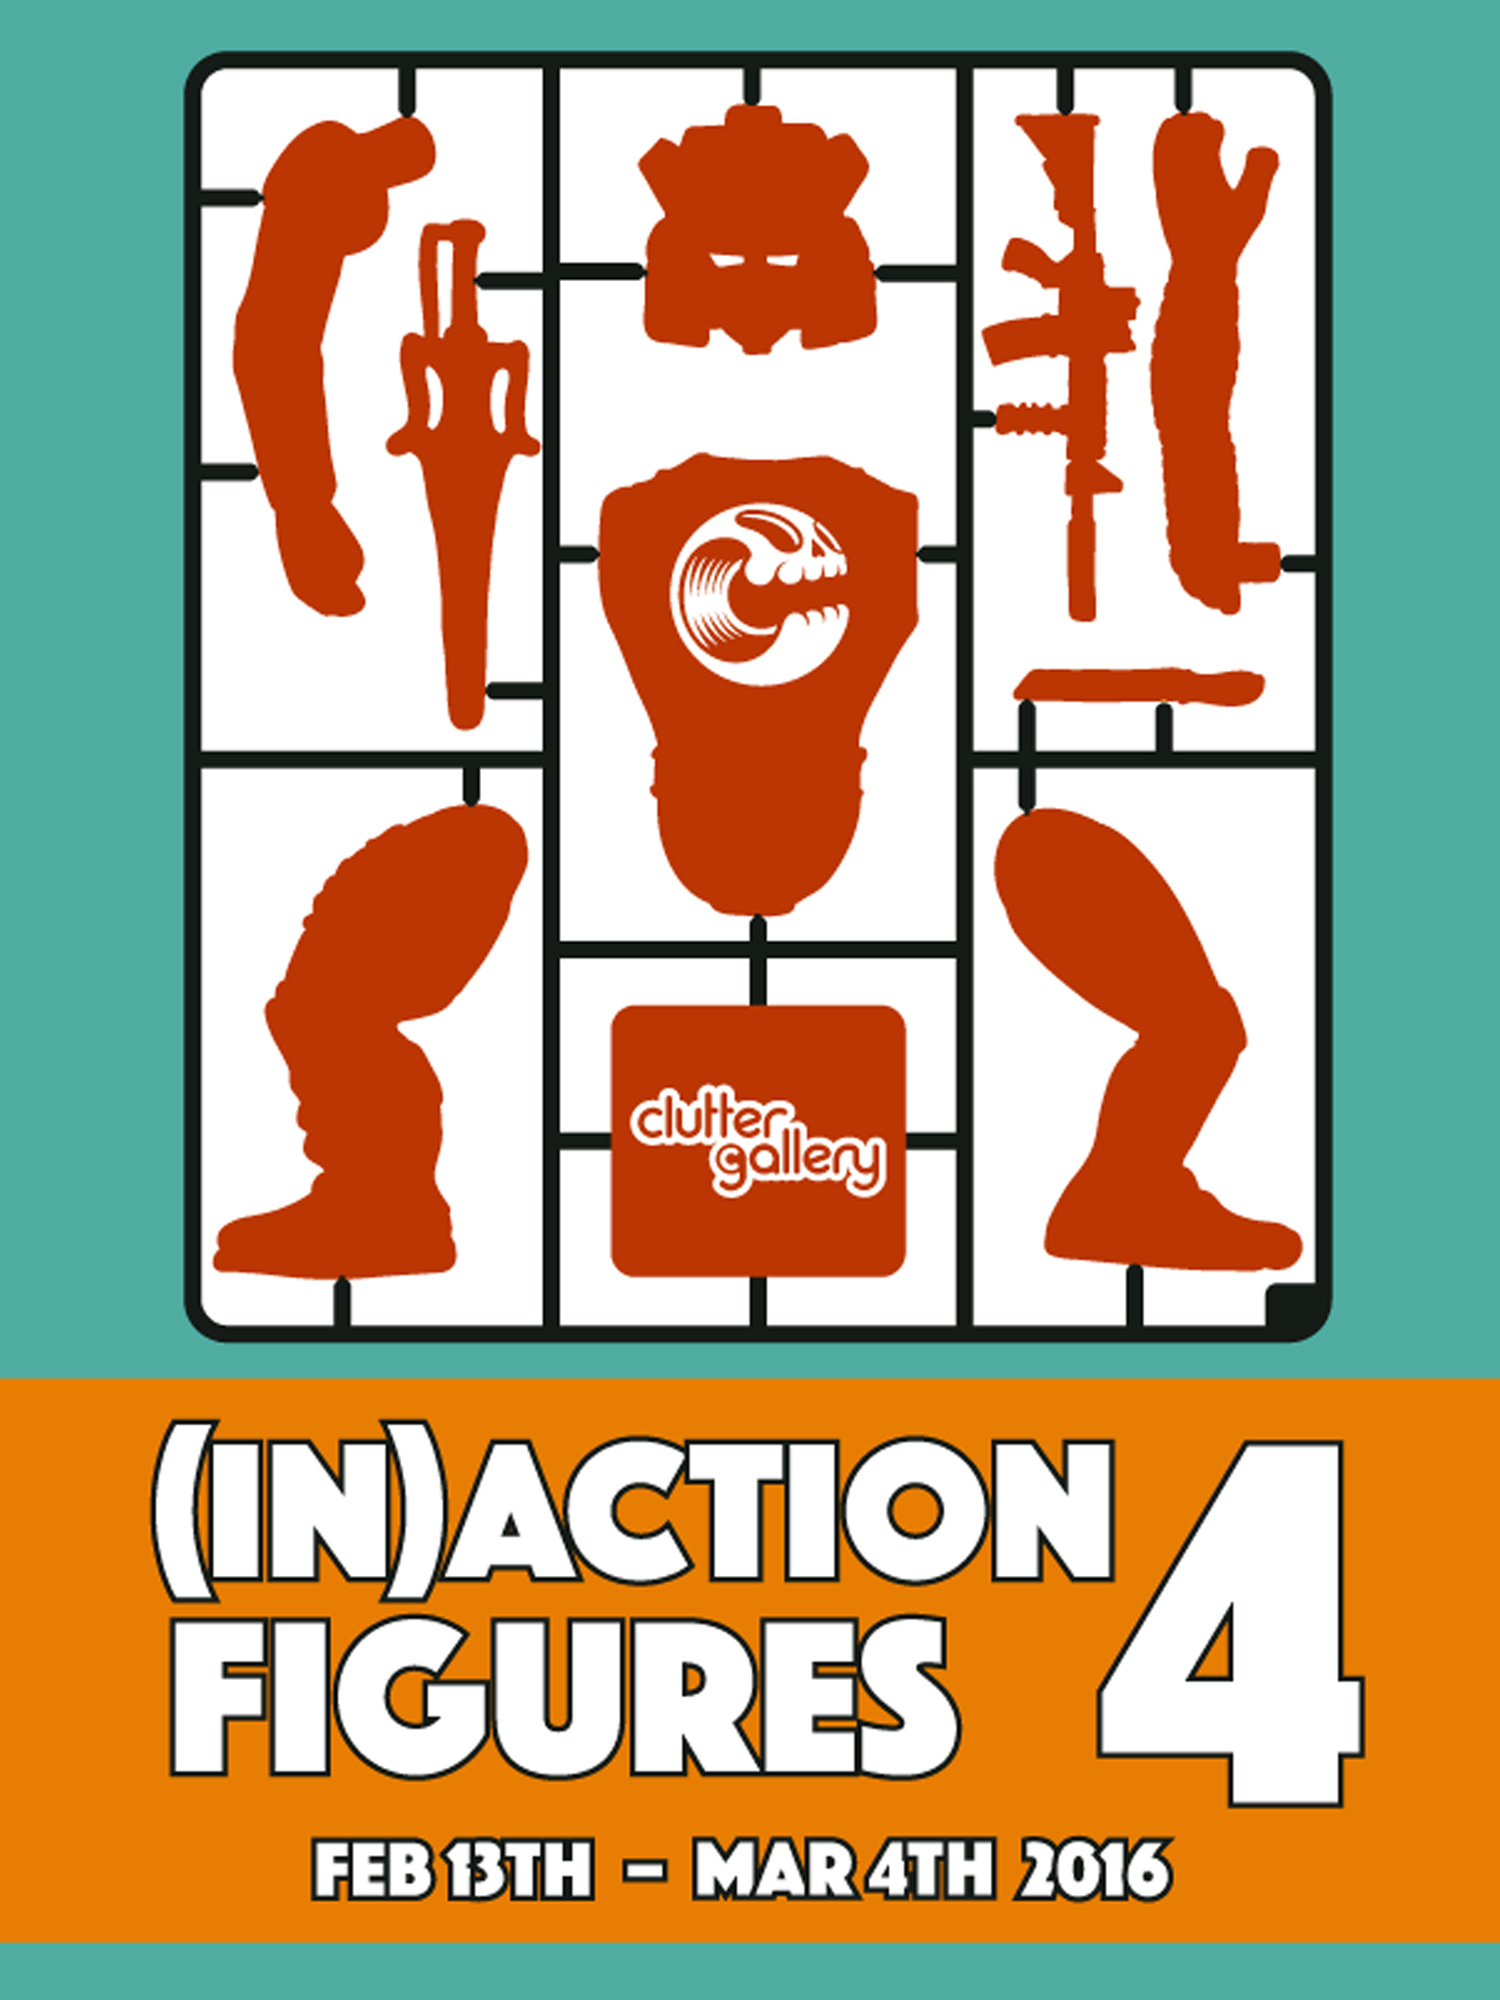 (IN)Action Figures 4